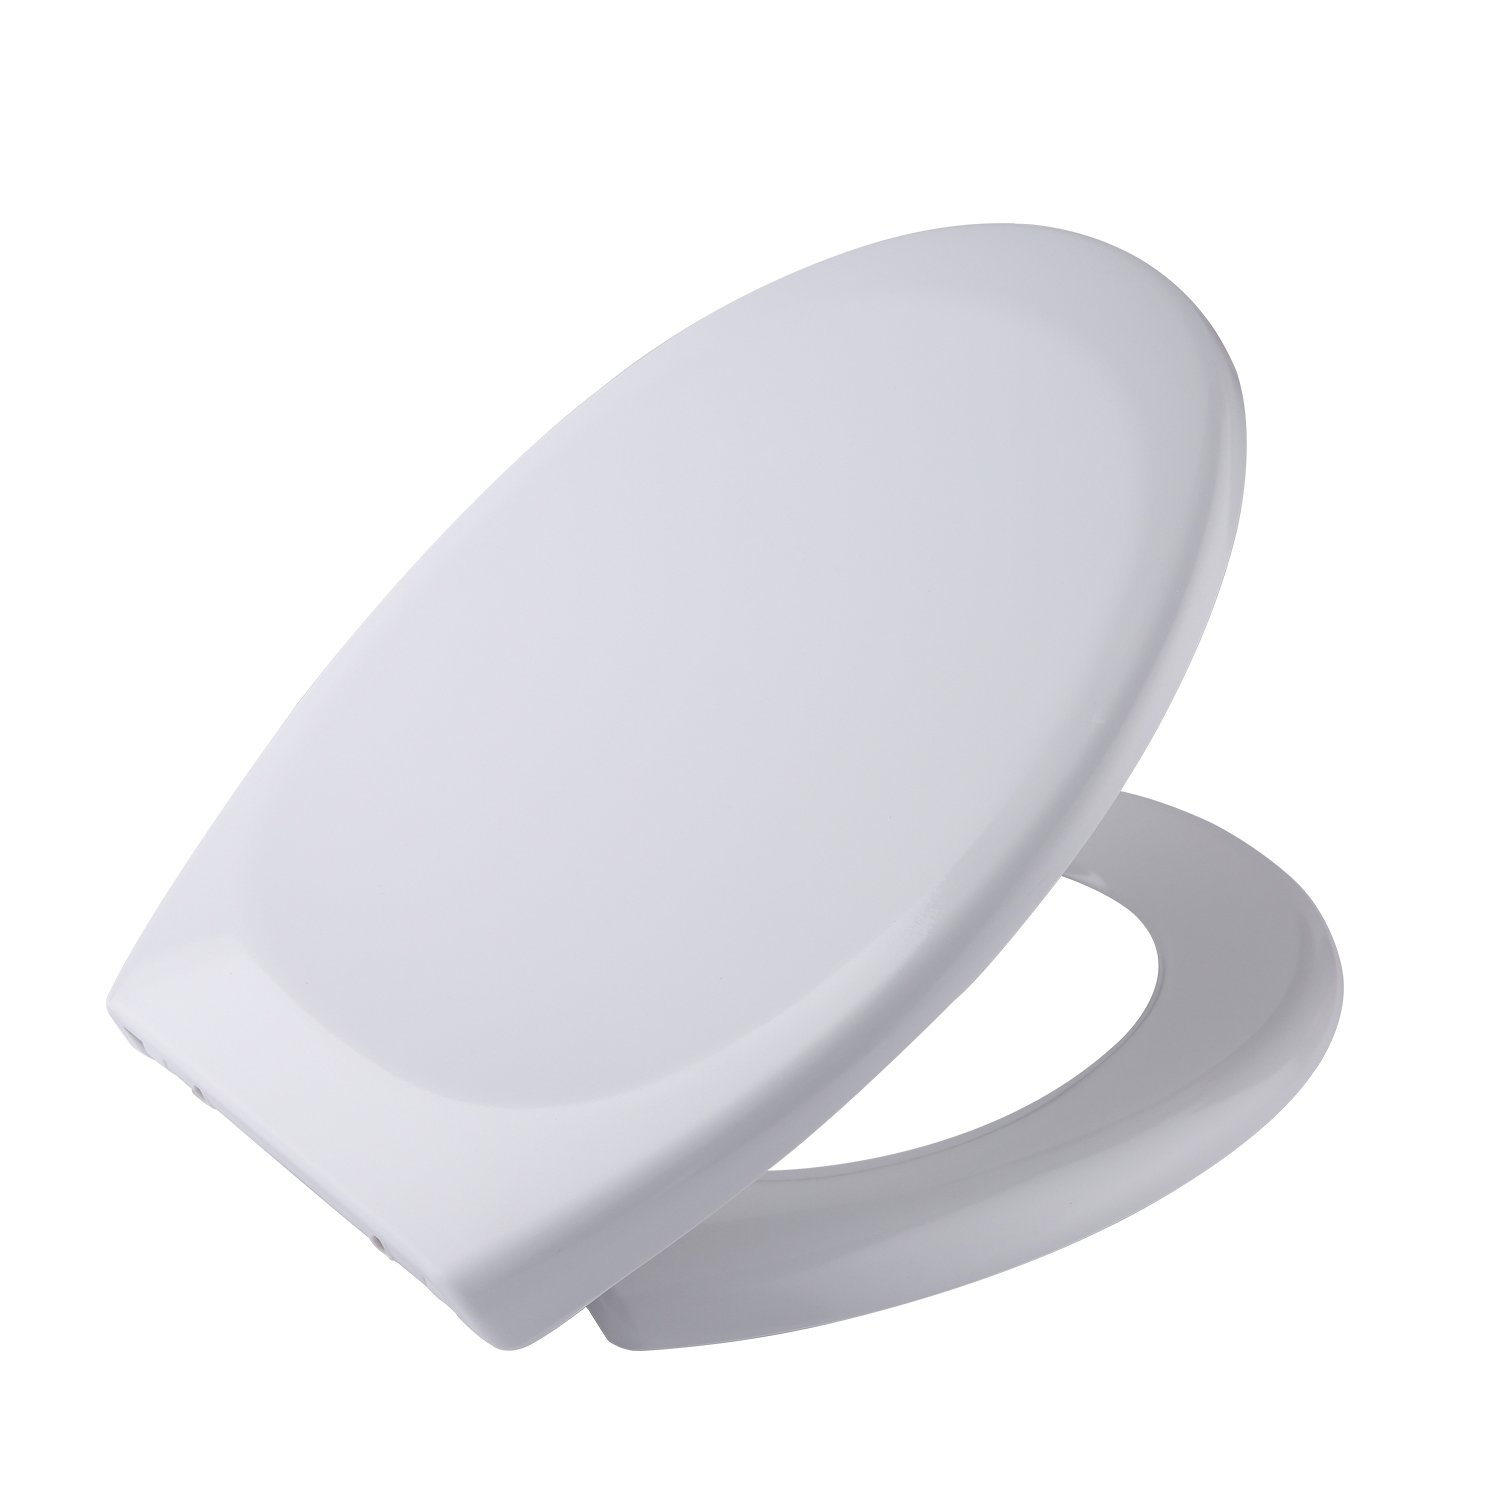 BATHWA Premium Round Toilet Seat with Cover, Soft-Close, Quick-Release, Ultra-thin for Easy Cleaning. Fits All Manufacturers' Round Toilets